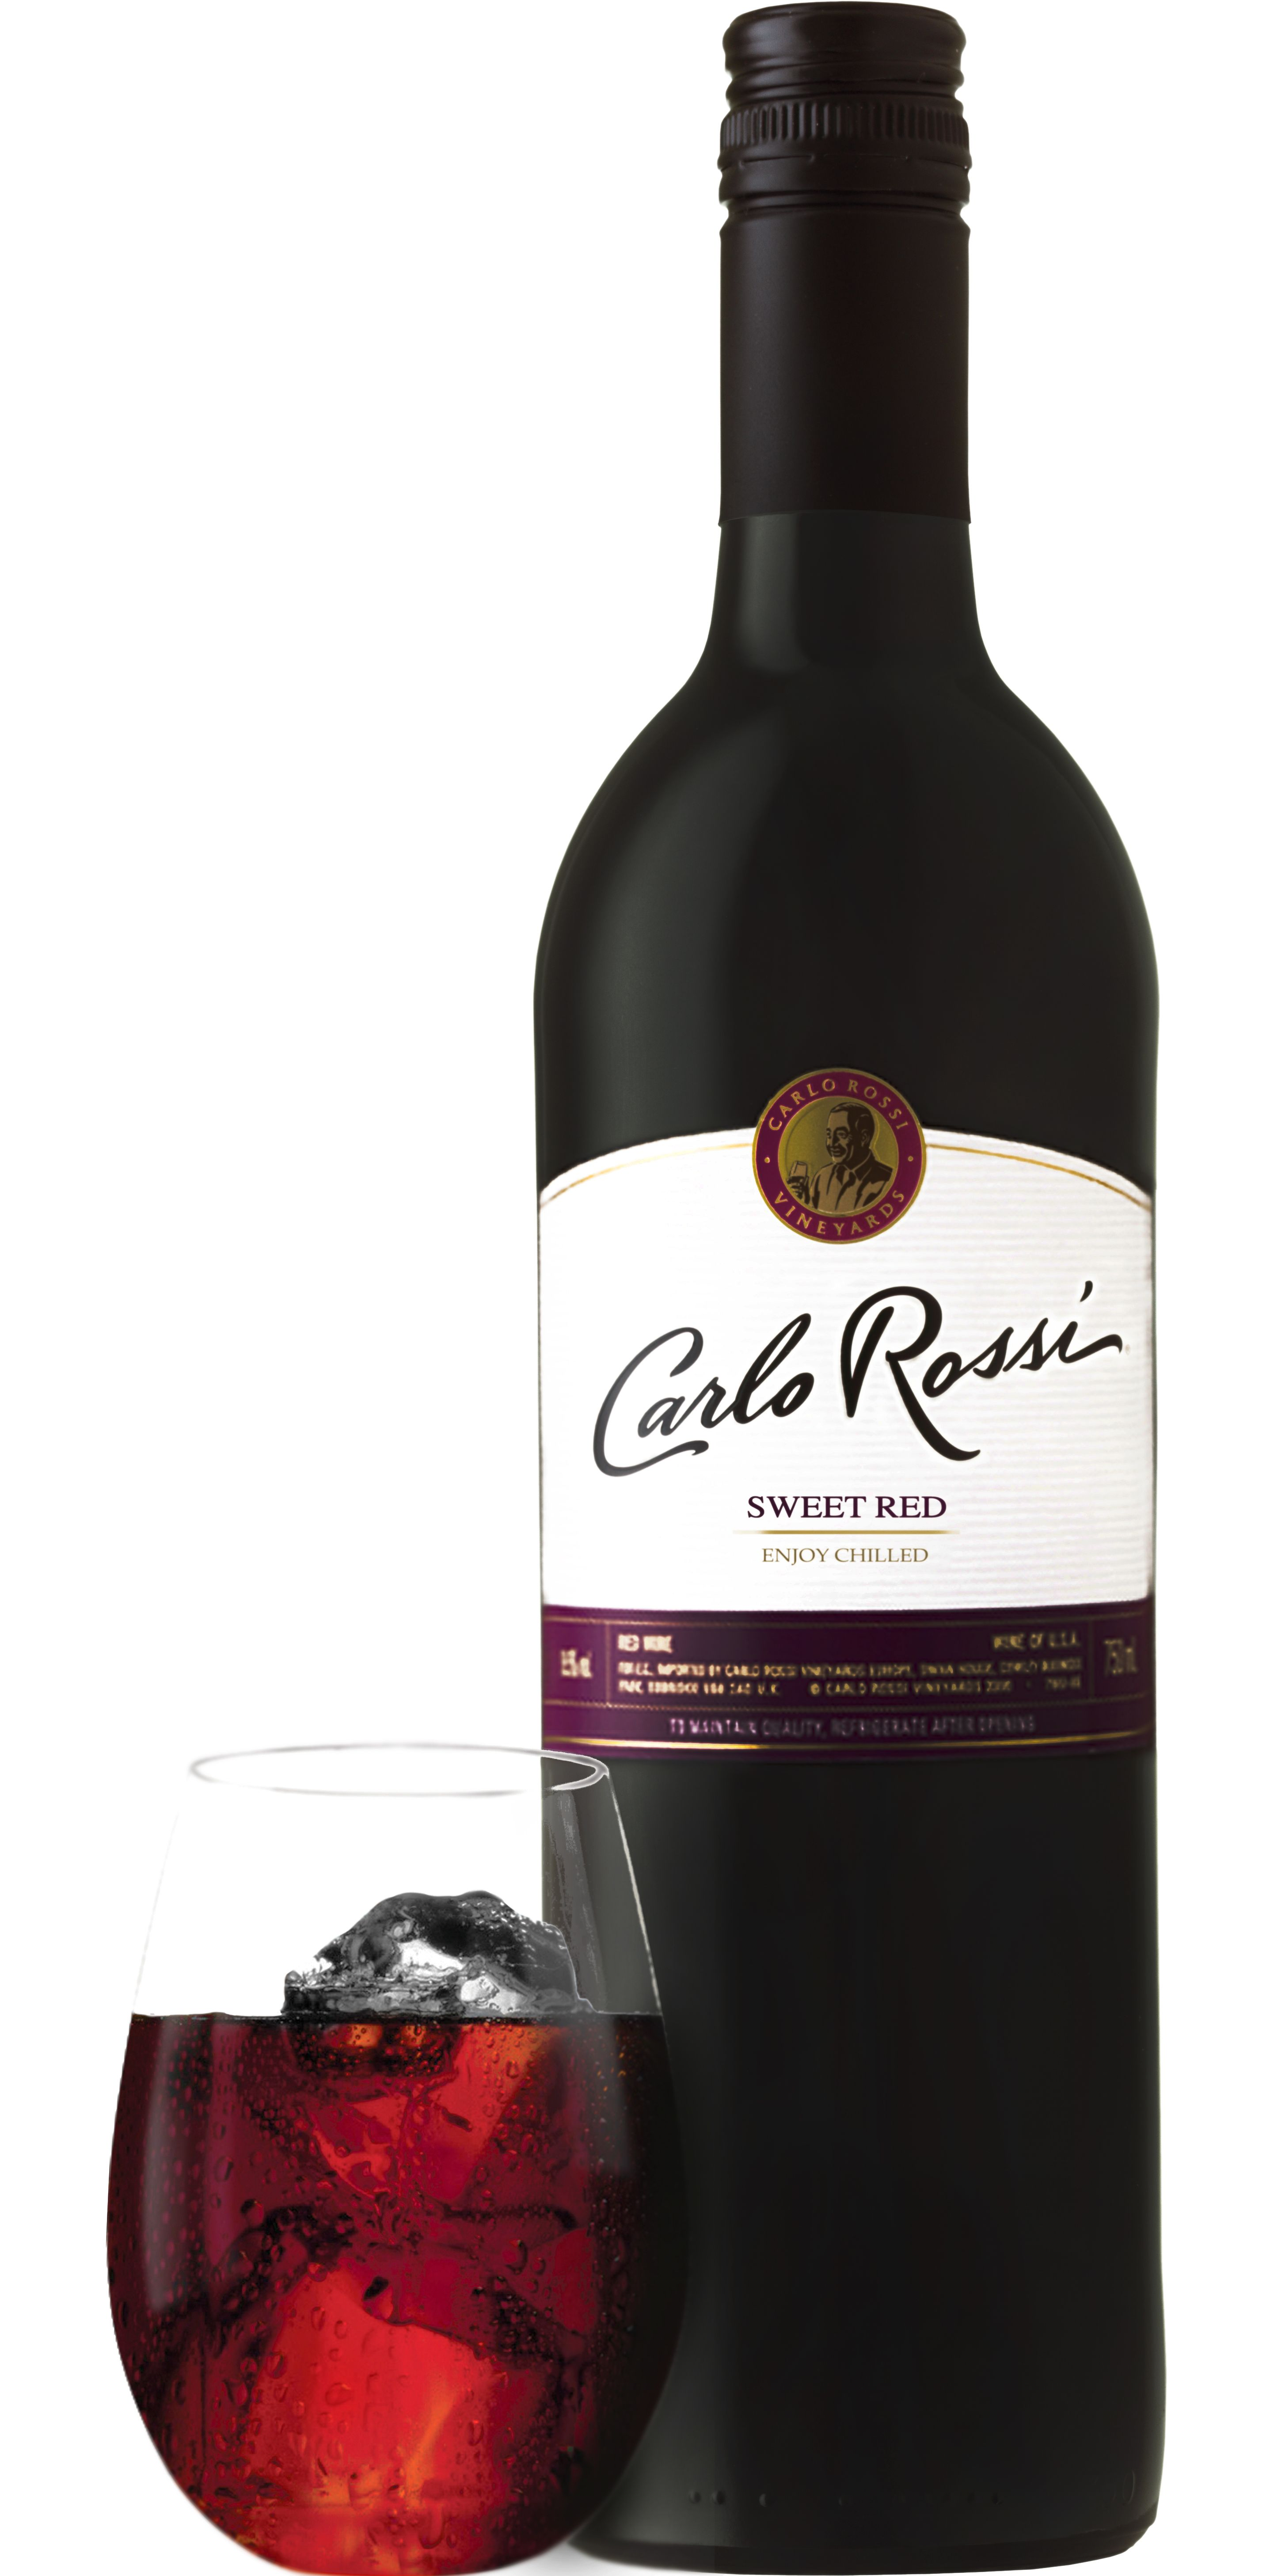 Carlo Rossi S Sweet Red Wine A New Way To Enjoy Wine